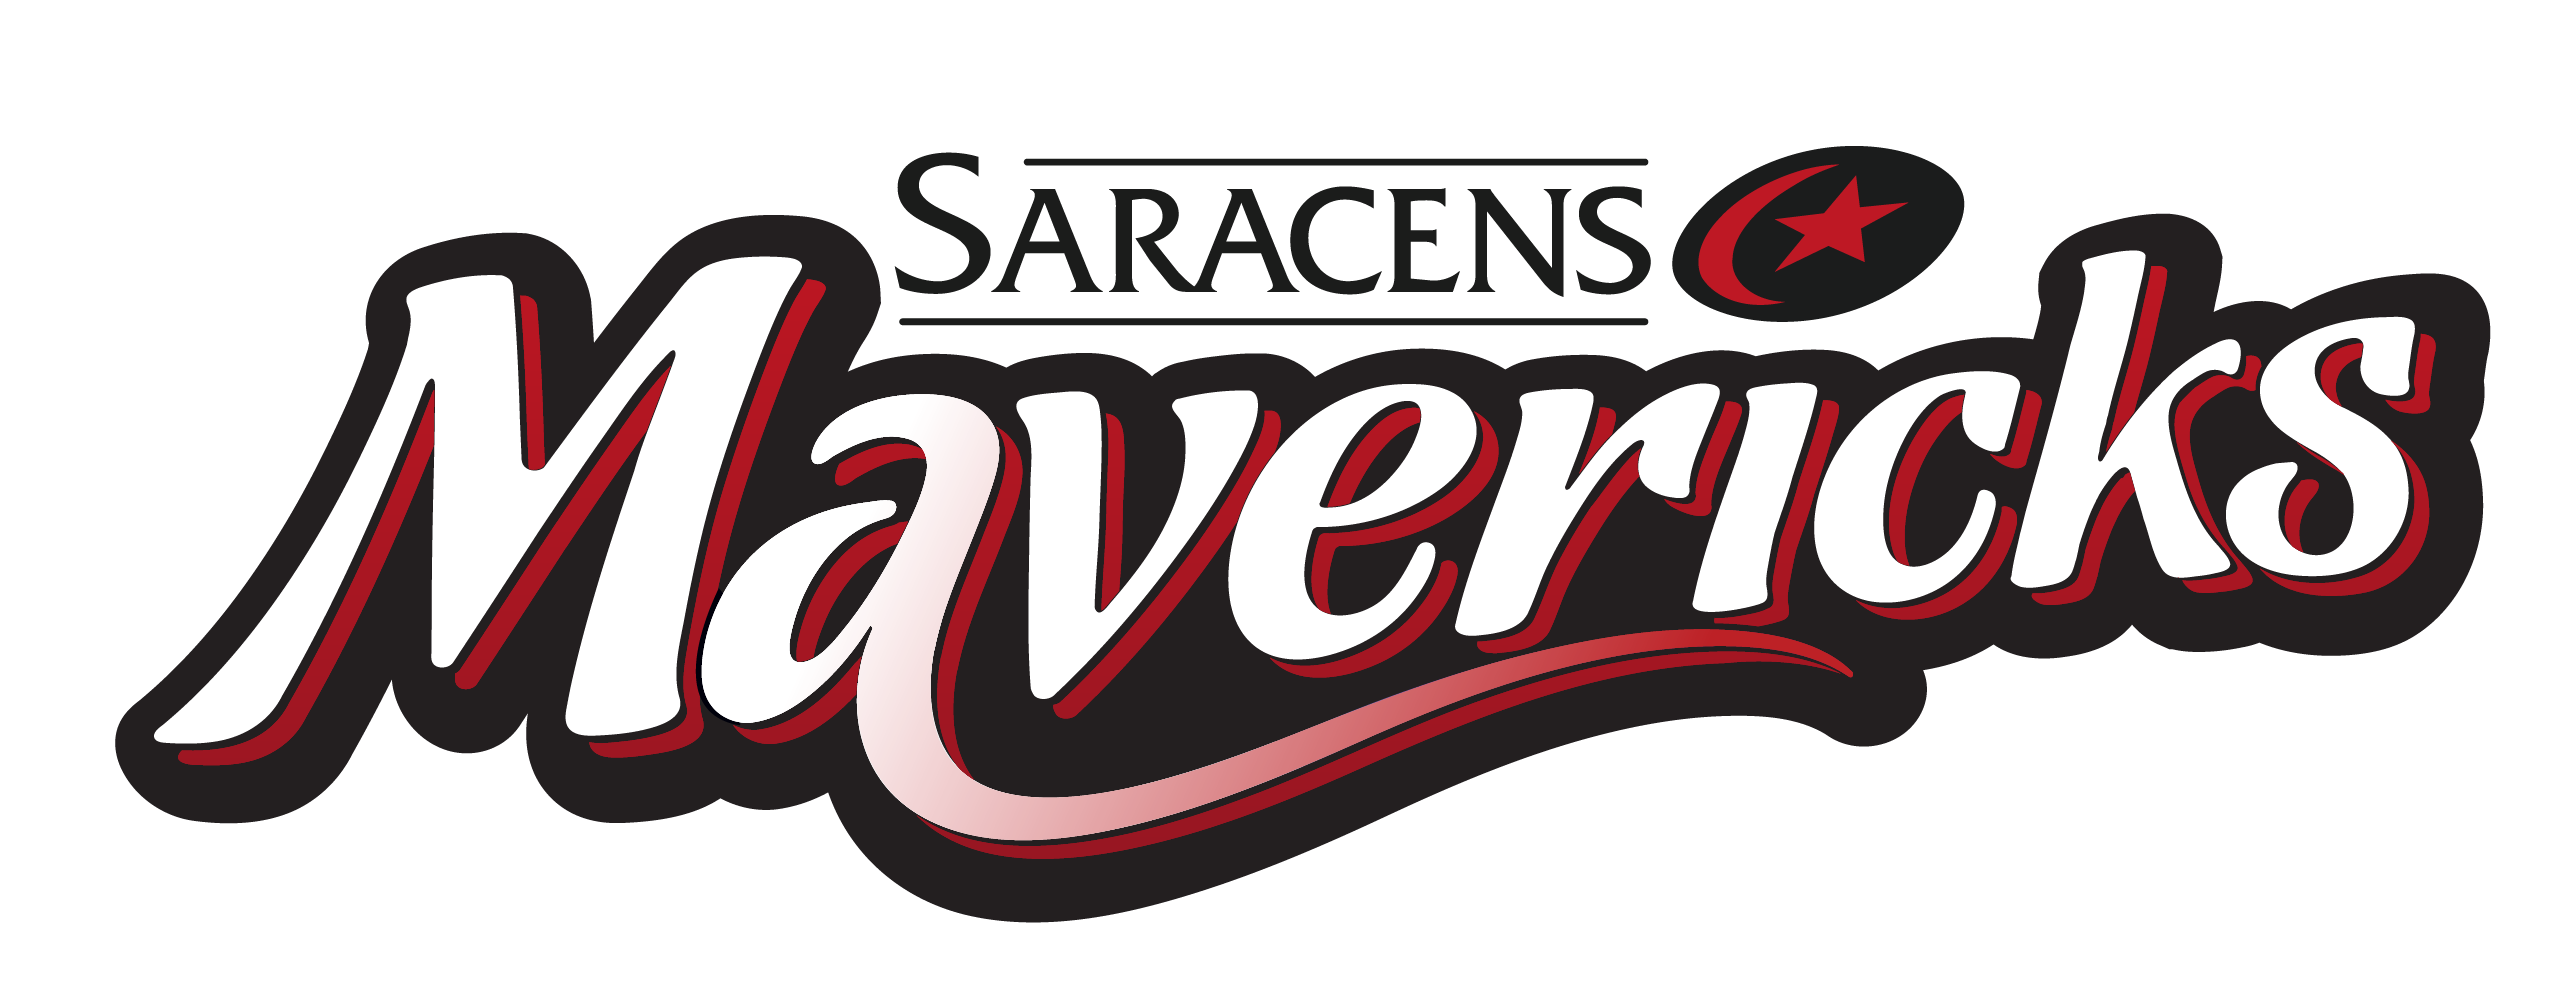 Image result for saracens mavericks logo